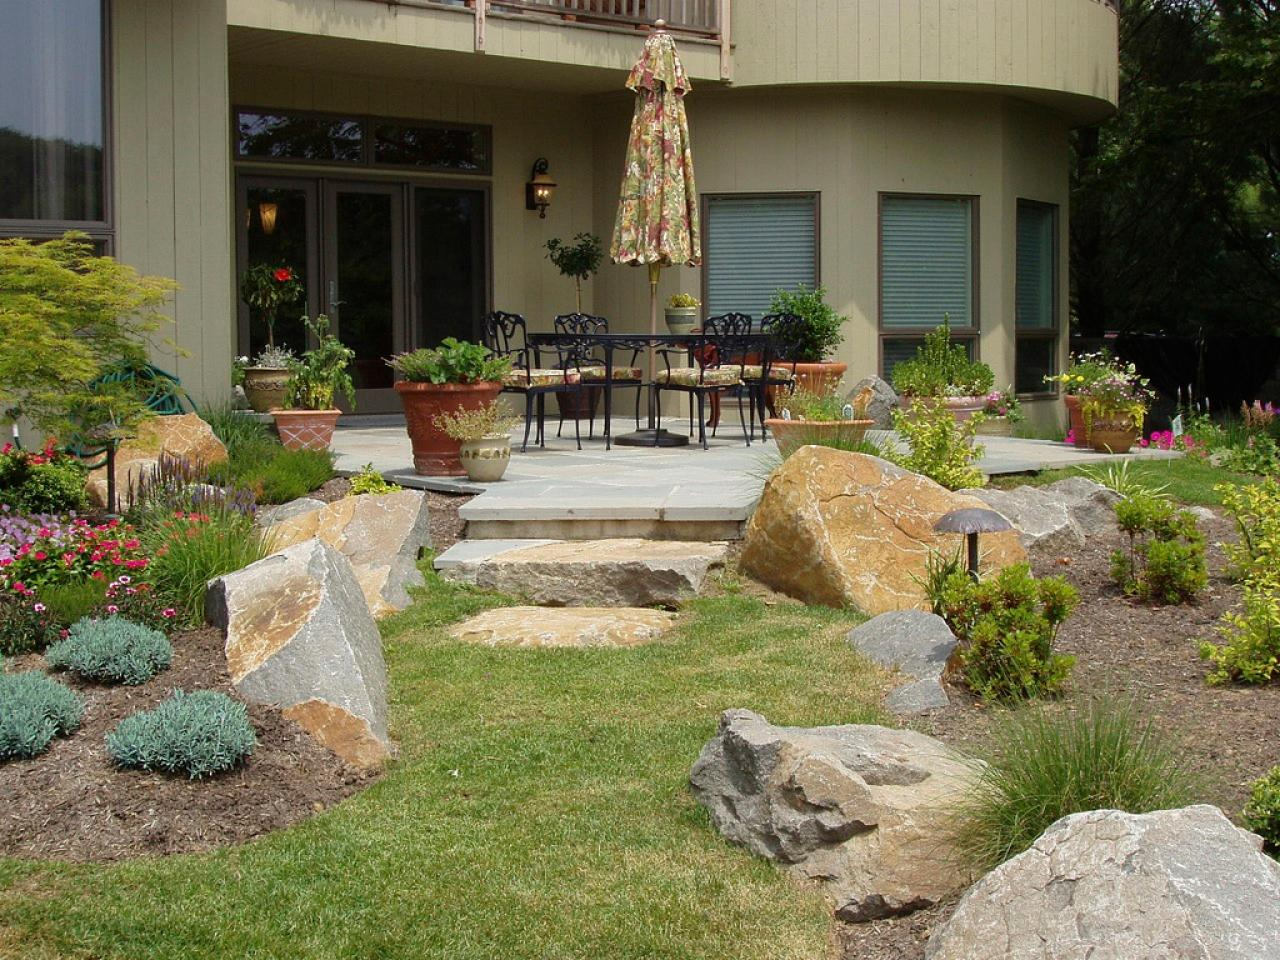 Patio landscaping ideas hgtv for Outside landscape design